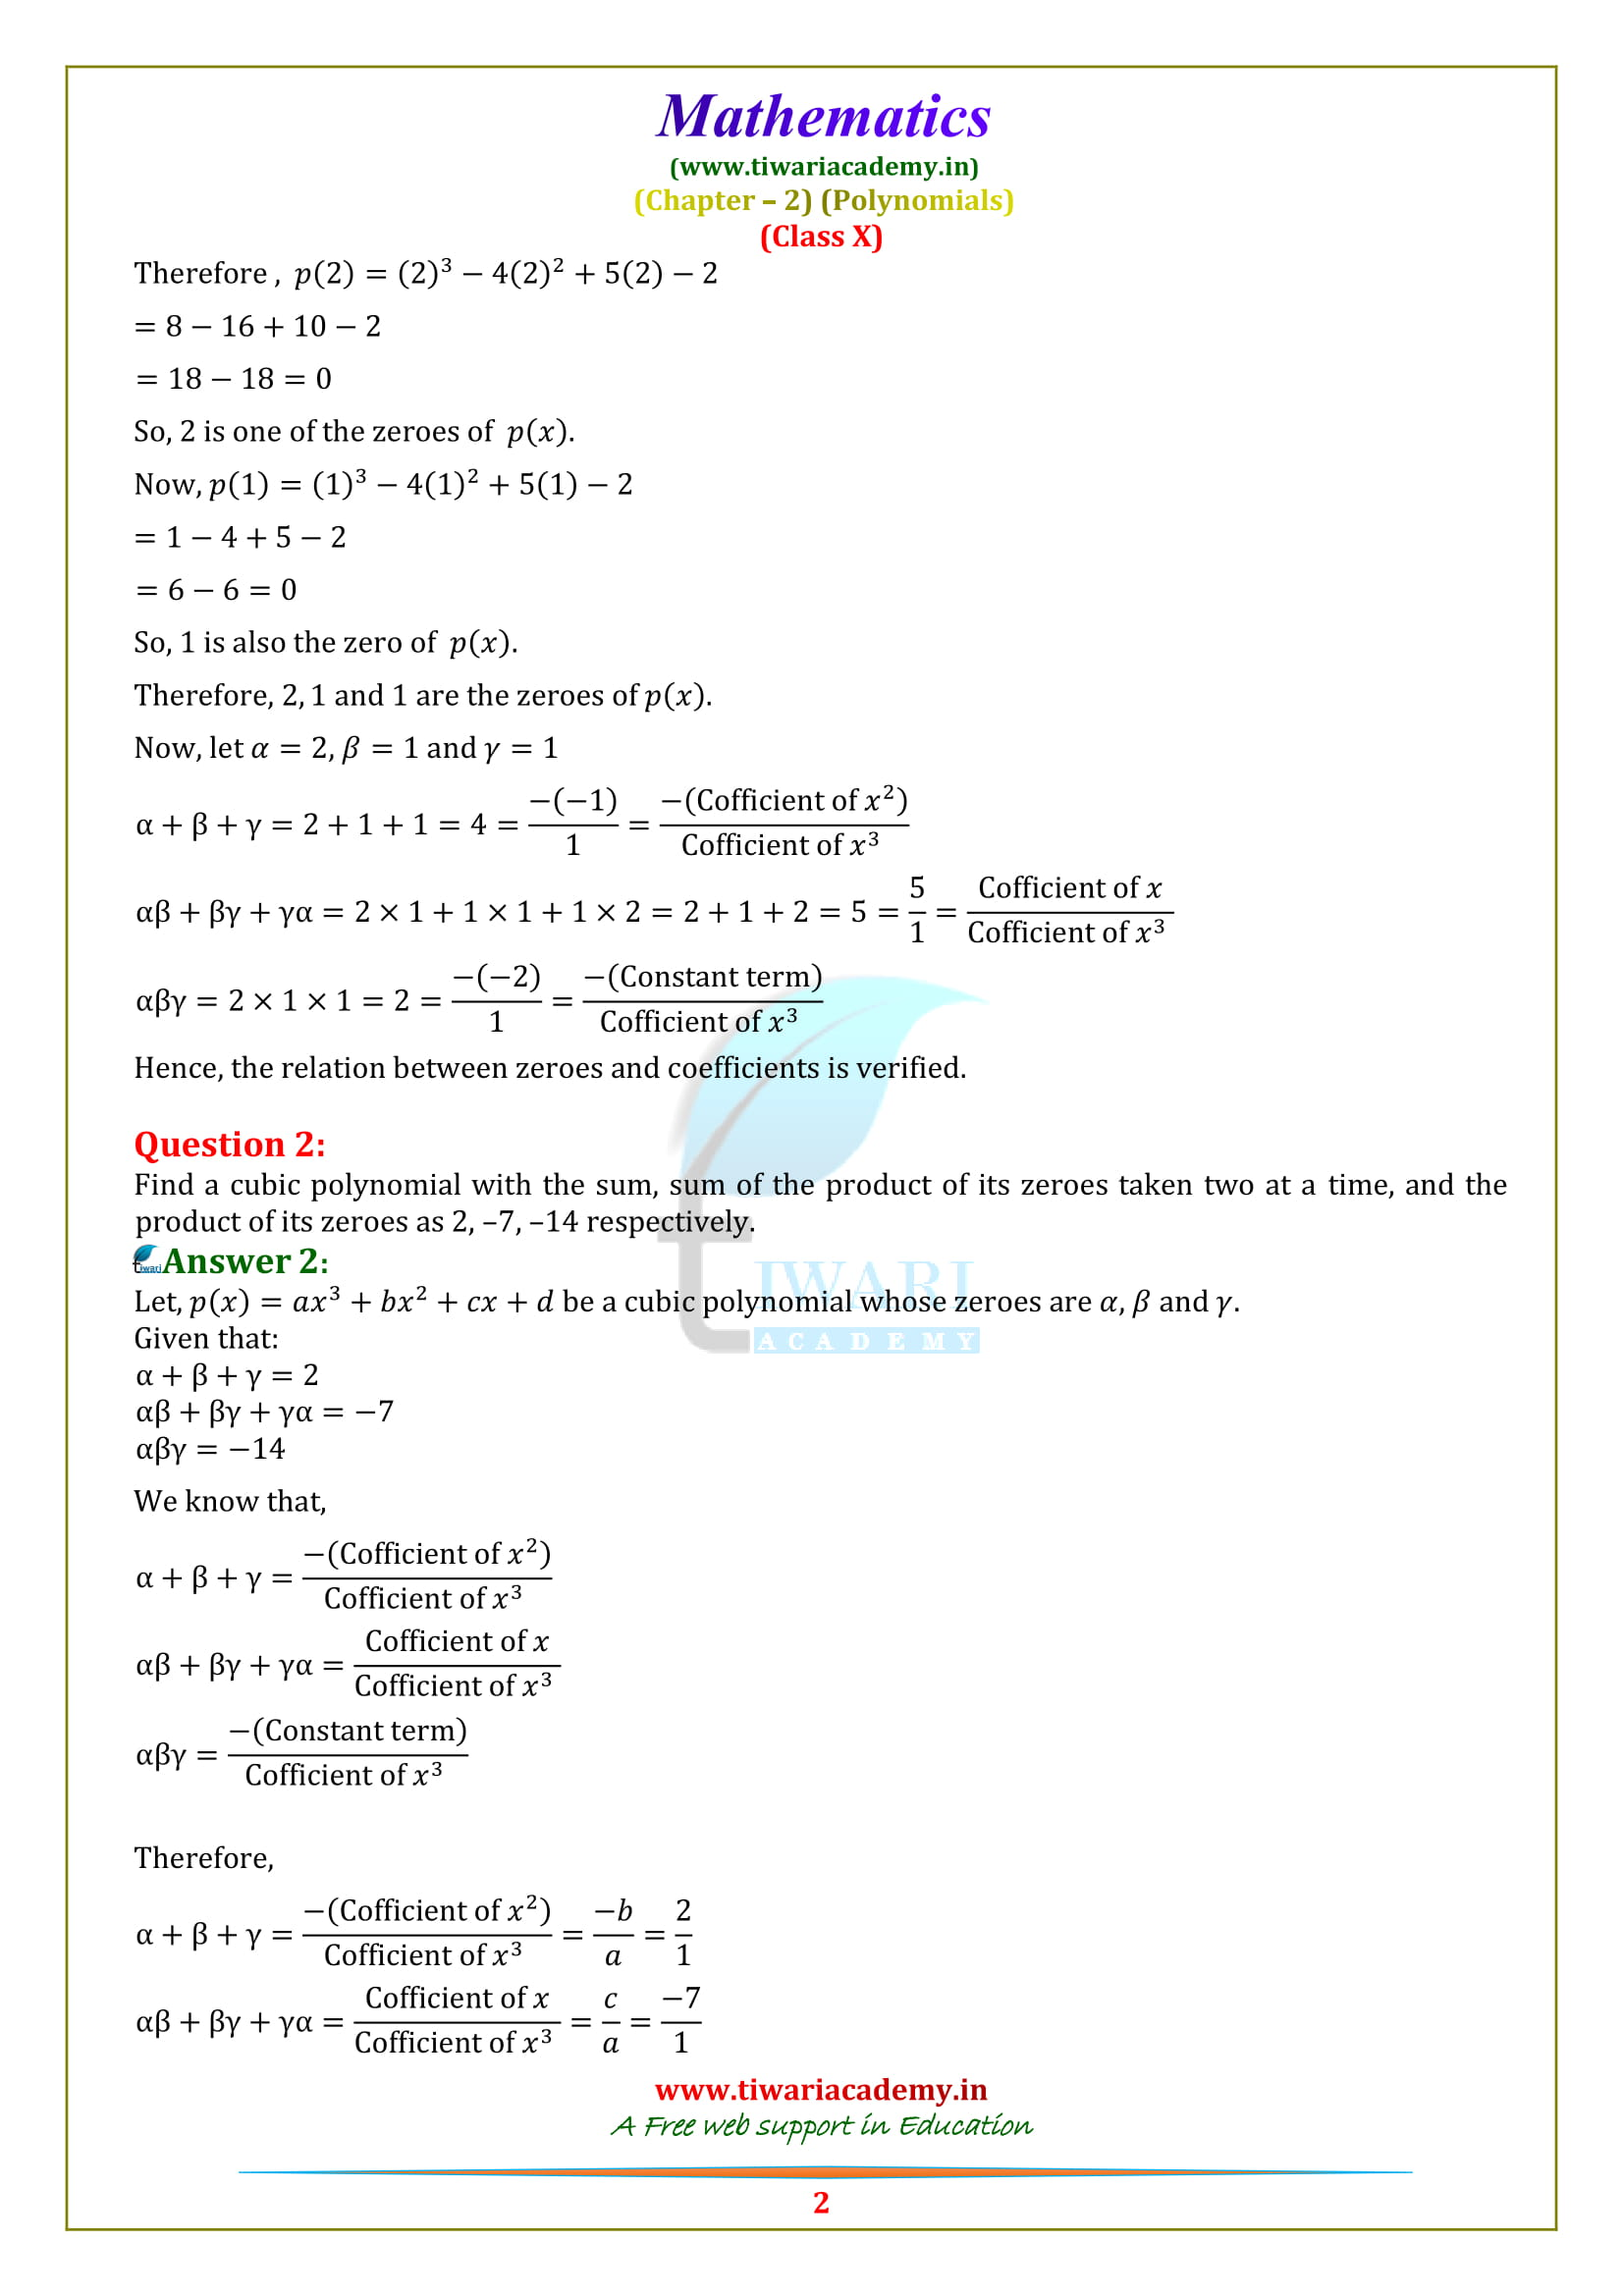 NCERT Solutions for Class 10 Maths Chapter 2 Exercise 2.4 Polynomials question 1, 2